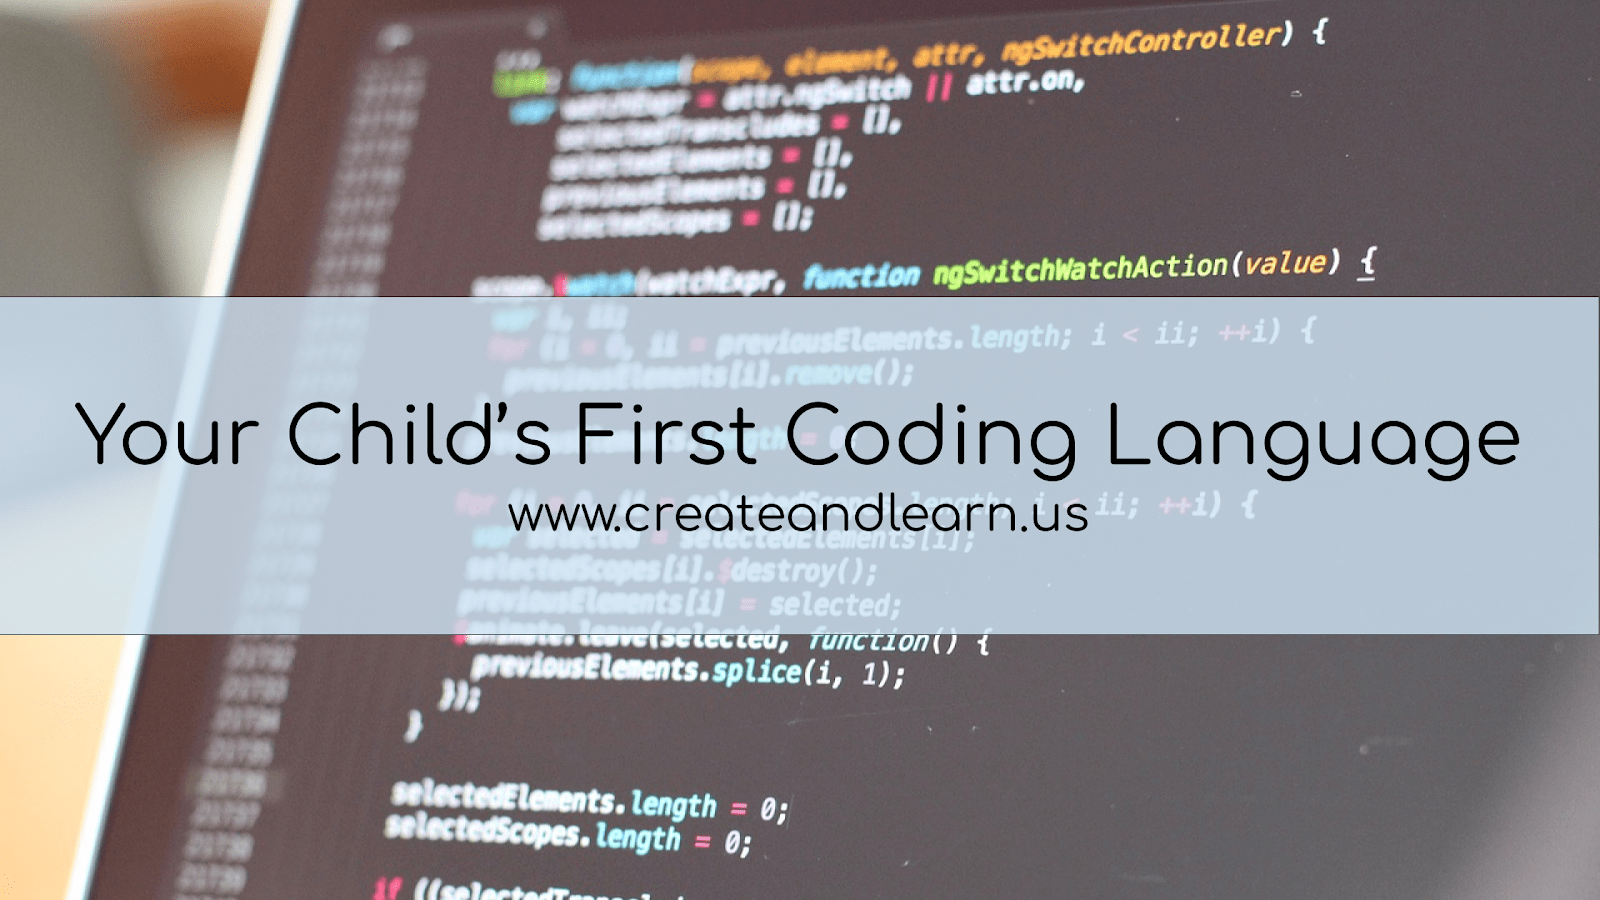 Scratch, Python or Javascript? Help Your Middle-Schooler Choose Their First Coding Language